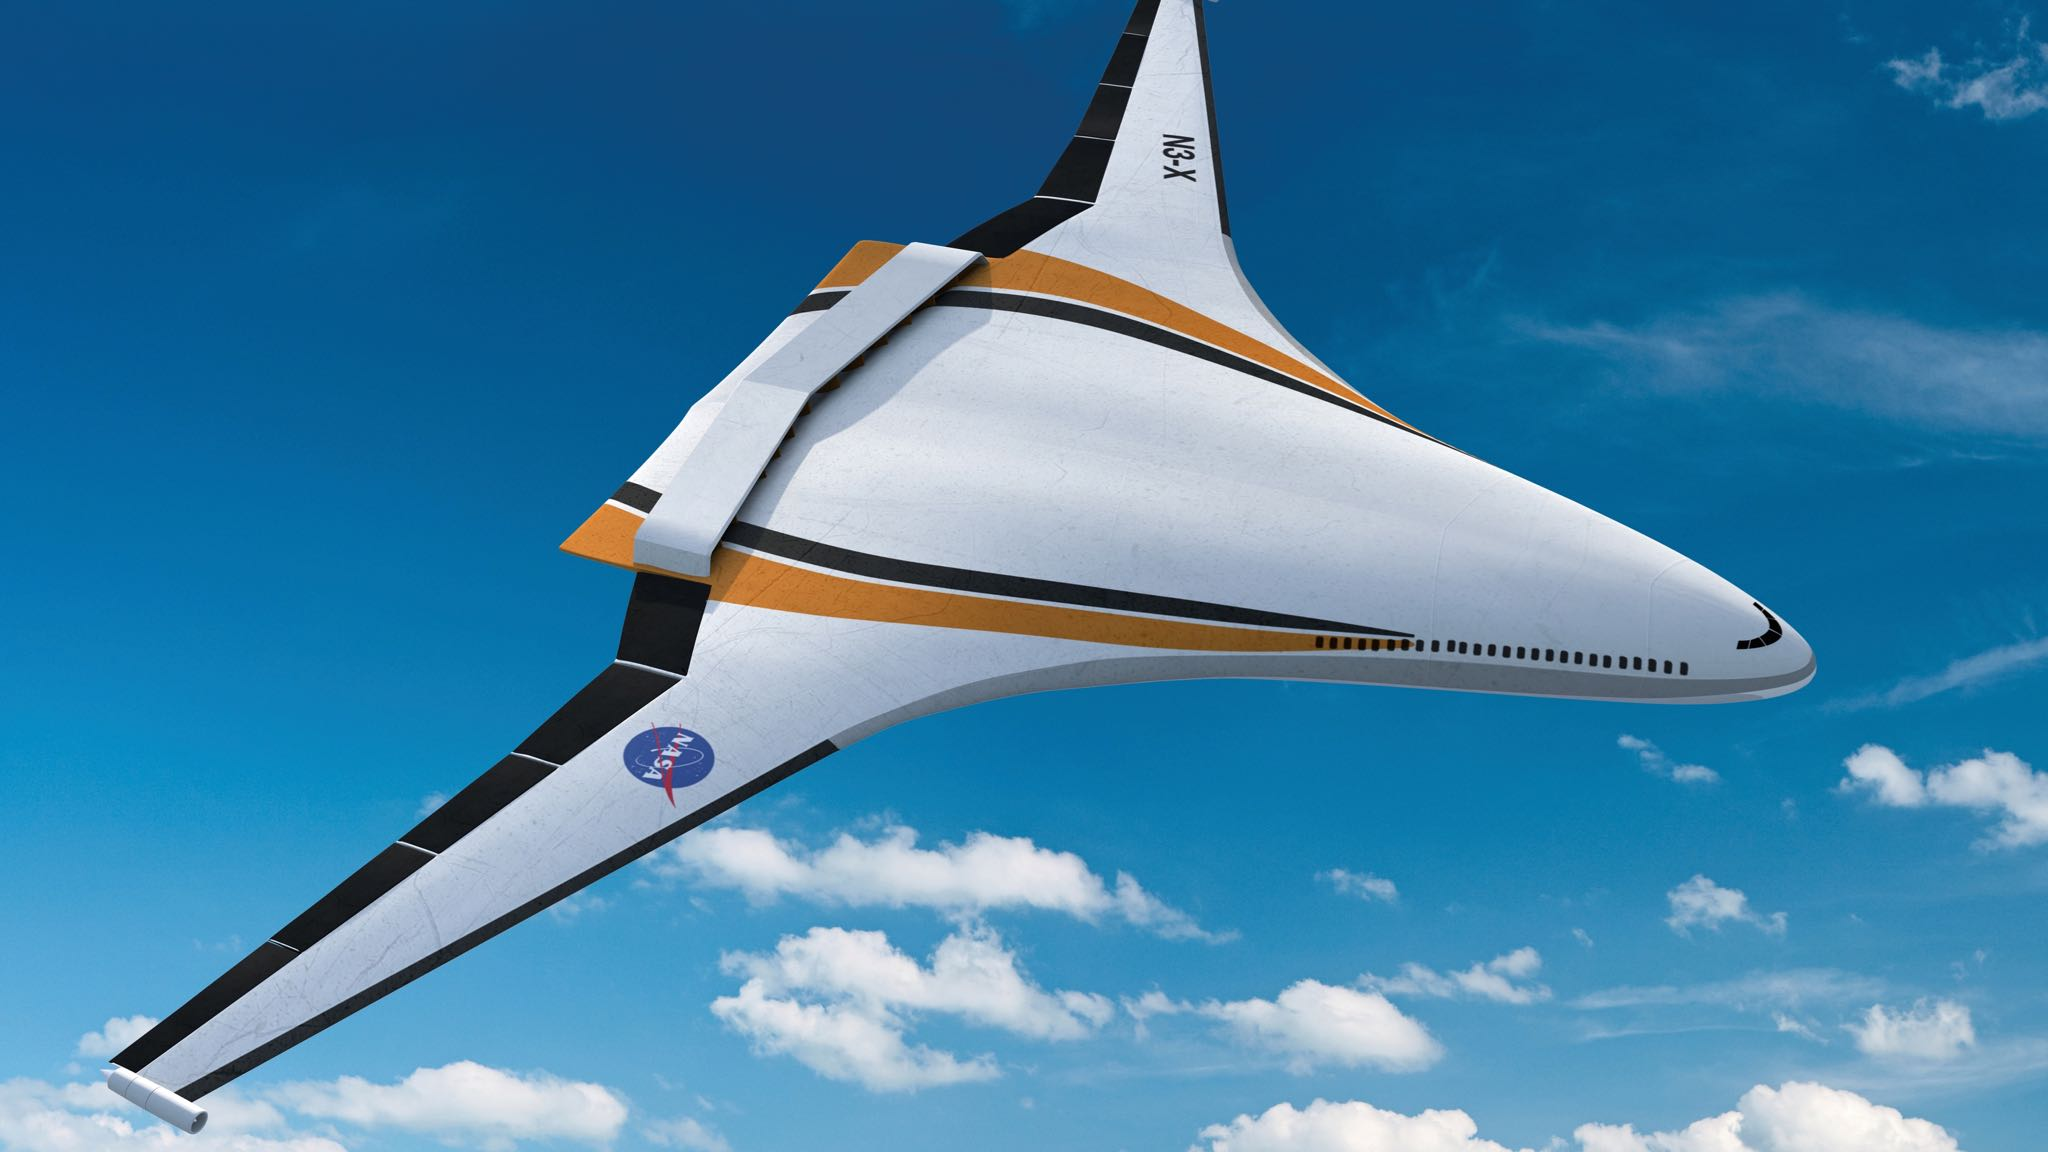 With the recent advances in technology and design aircraft concepts - Nasa_hwb_full